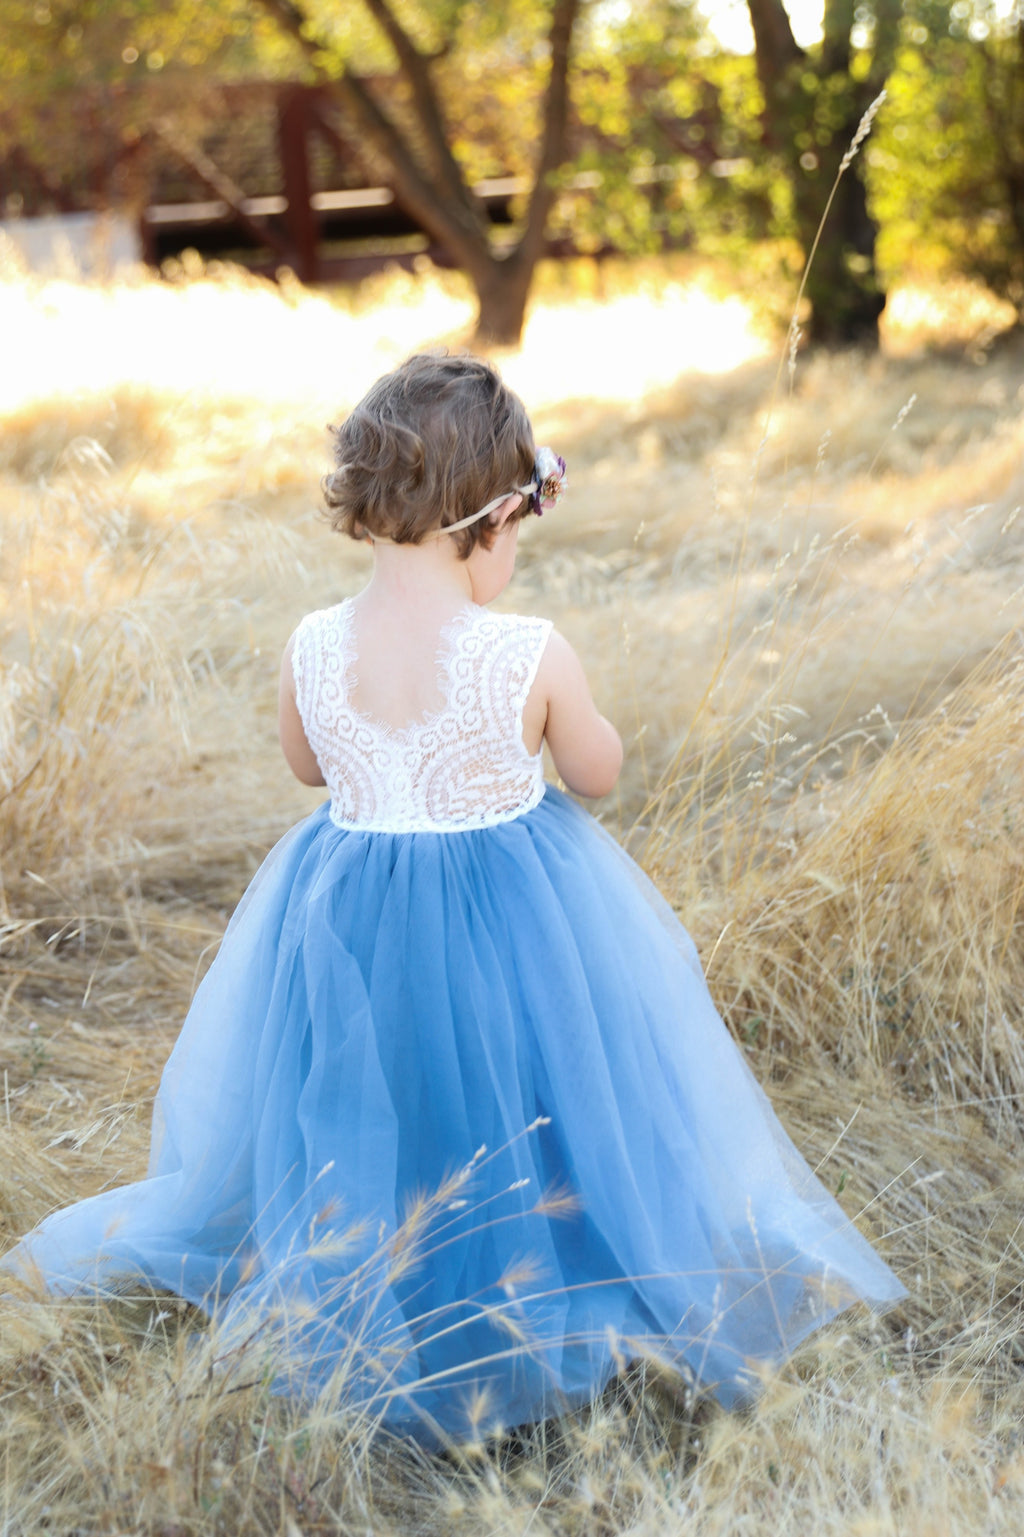 ull Length Sleeveless Dusty Blue Tulle Lace Top Scalloped Edges Back Party Flower Girl Dress